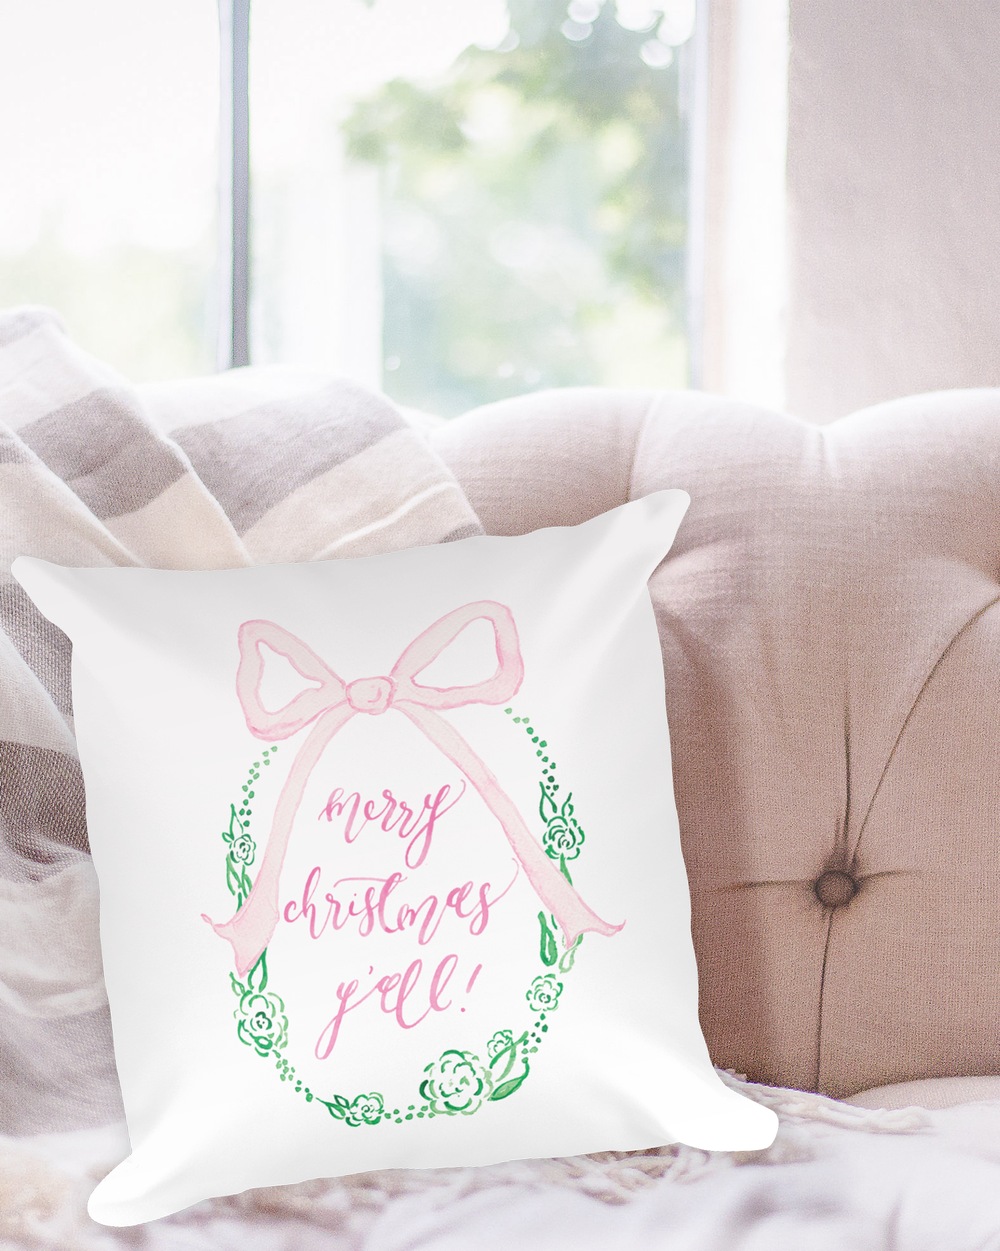 Merry Christmas Y'all Watercolor Christmas Pillow by Simply Jessica Marie